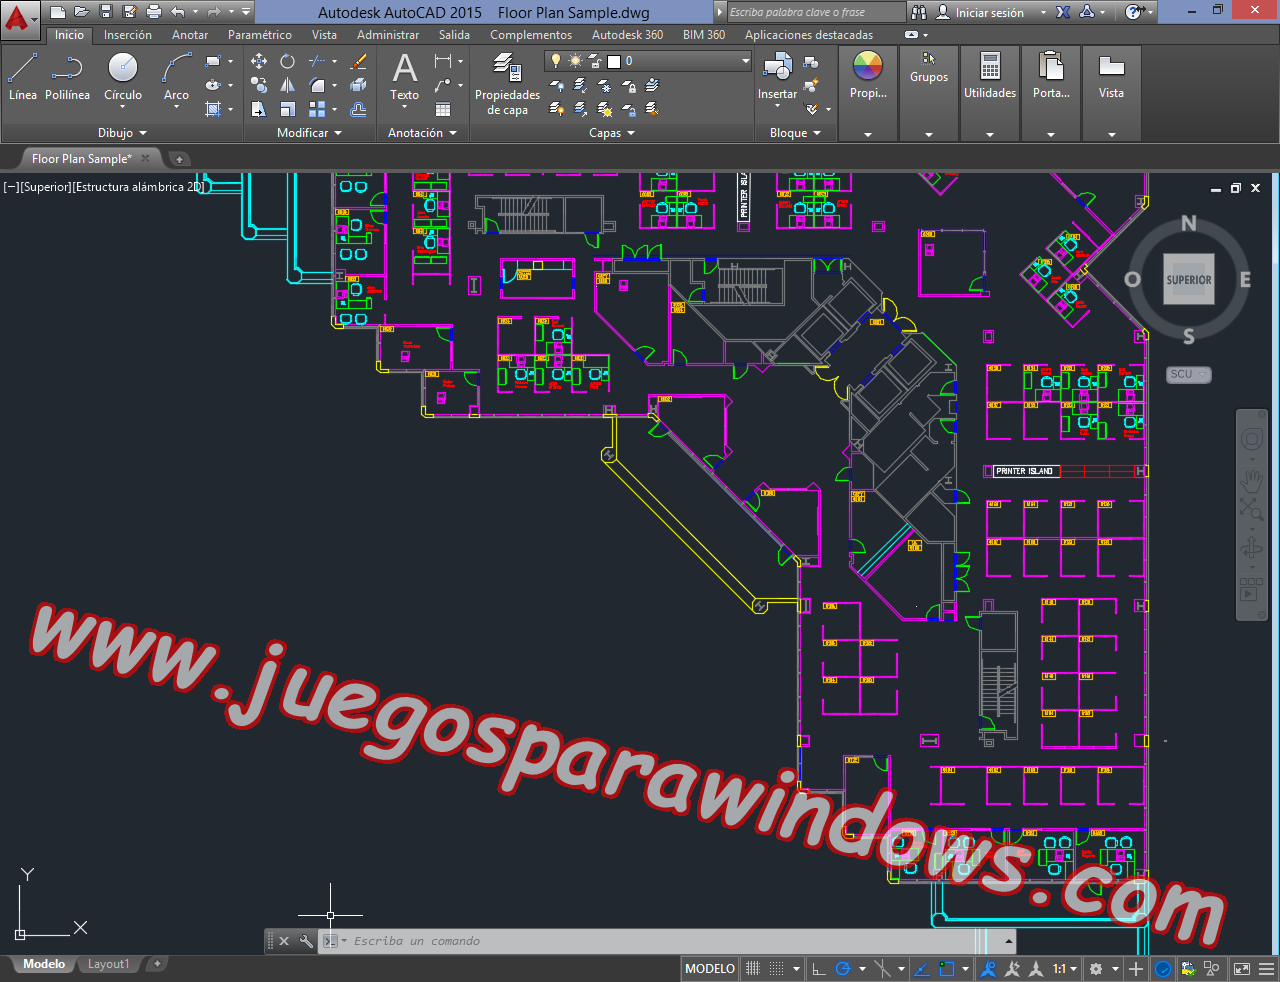 AutoCAD 2015 Full PC ESPAÑOL INGLES 32 y 64 Bits (XFORCE) 12